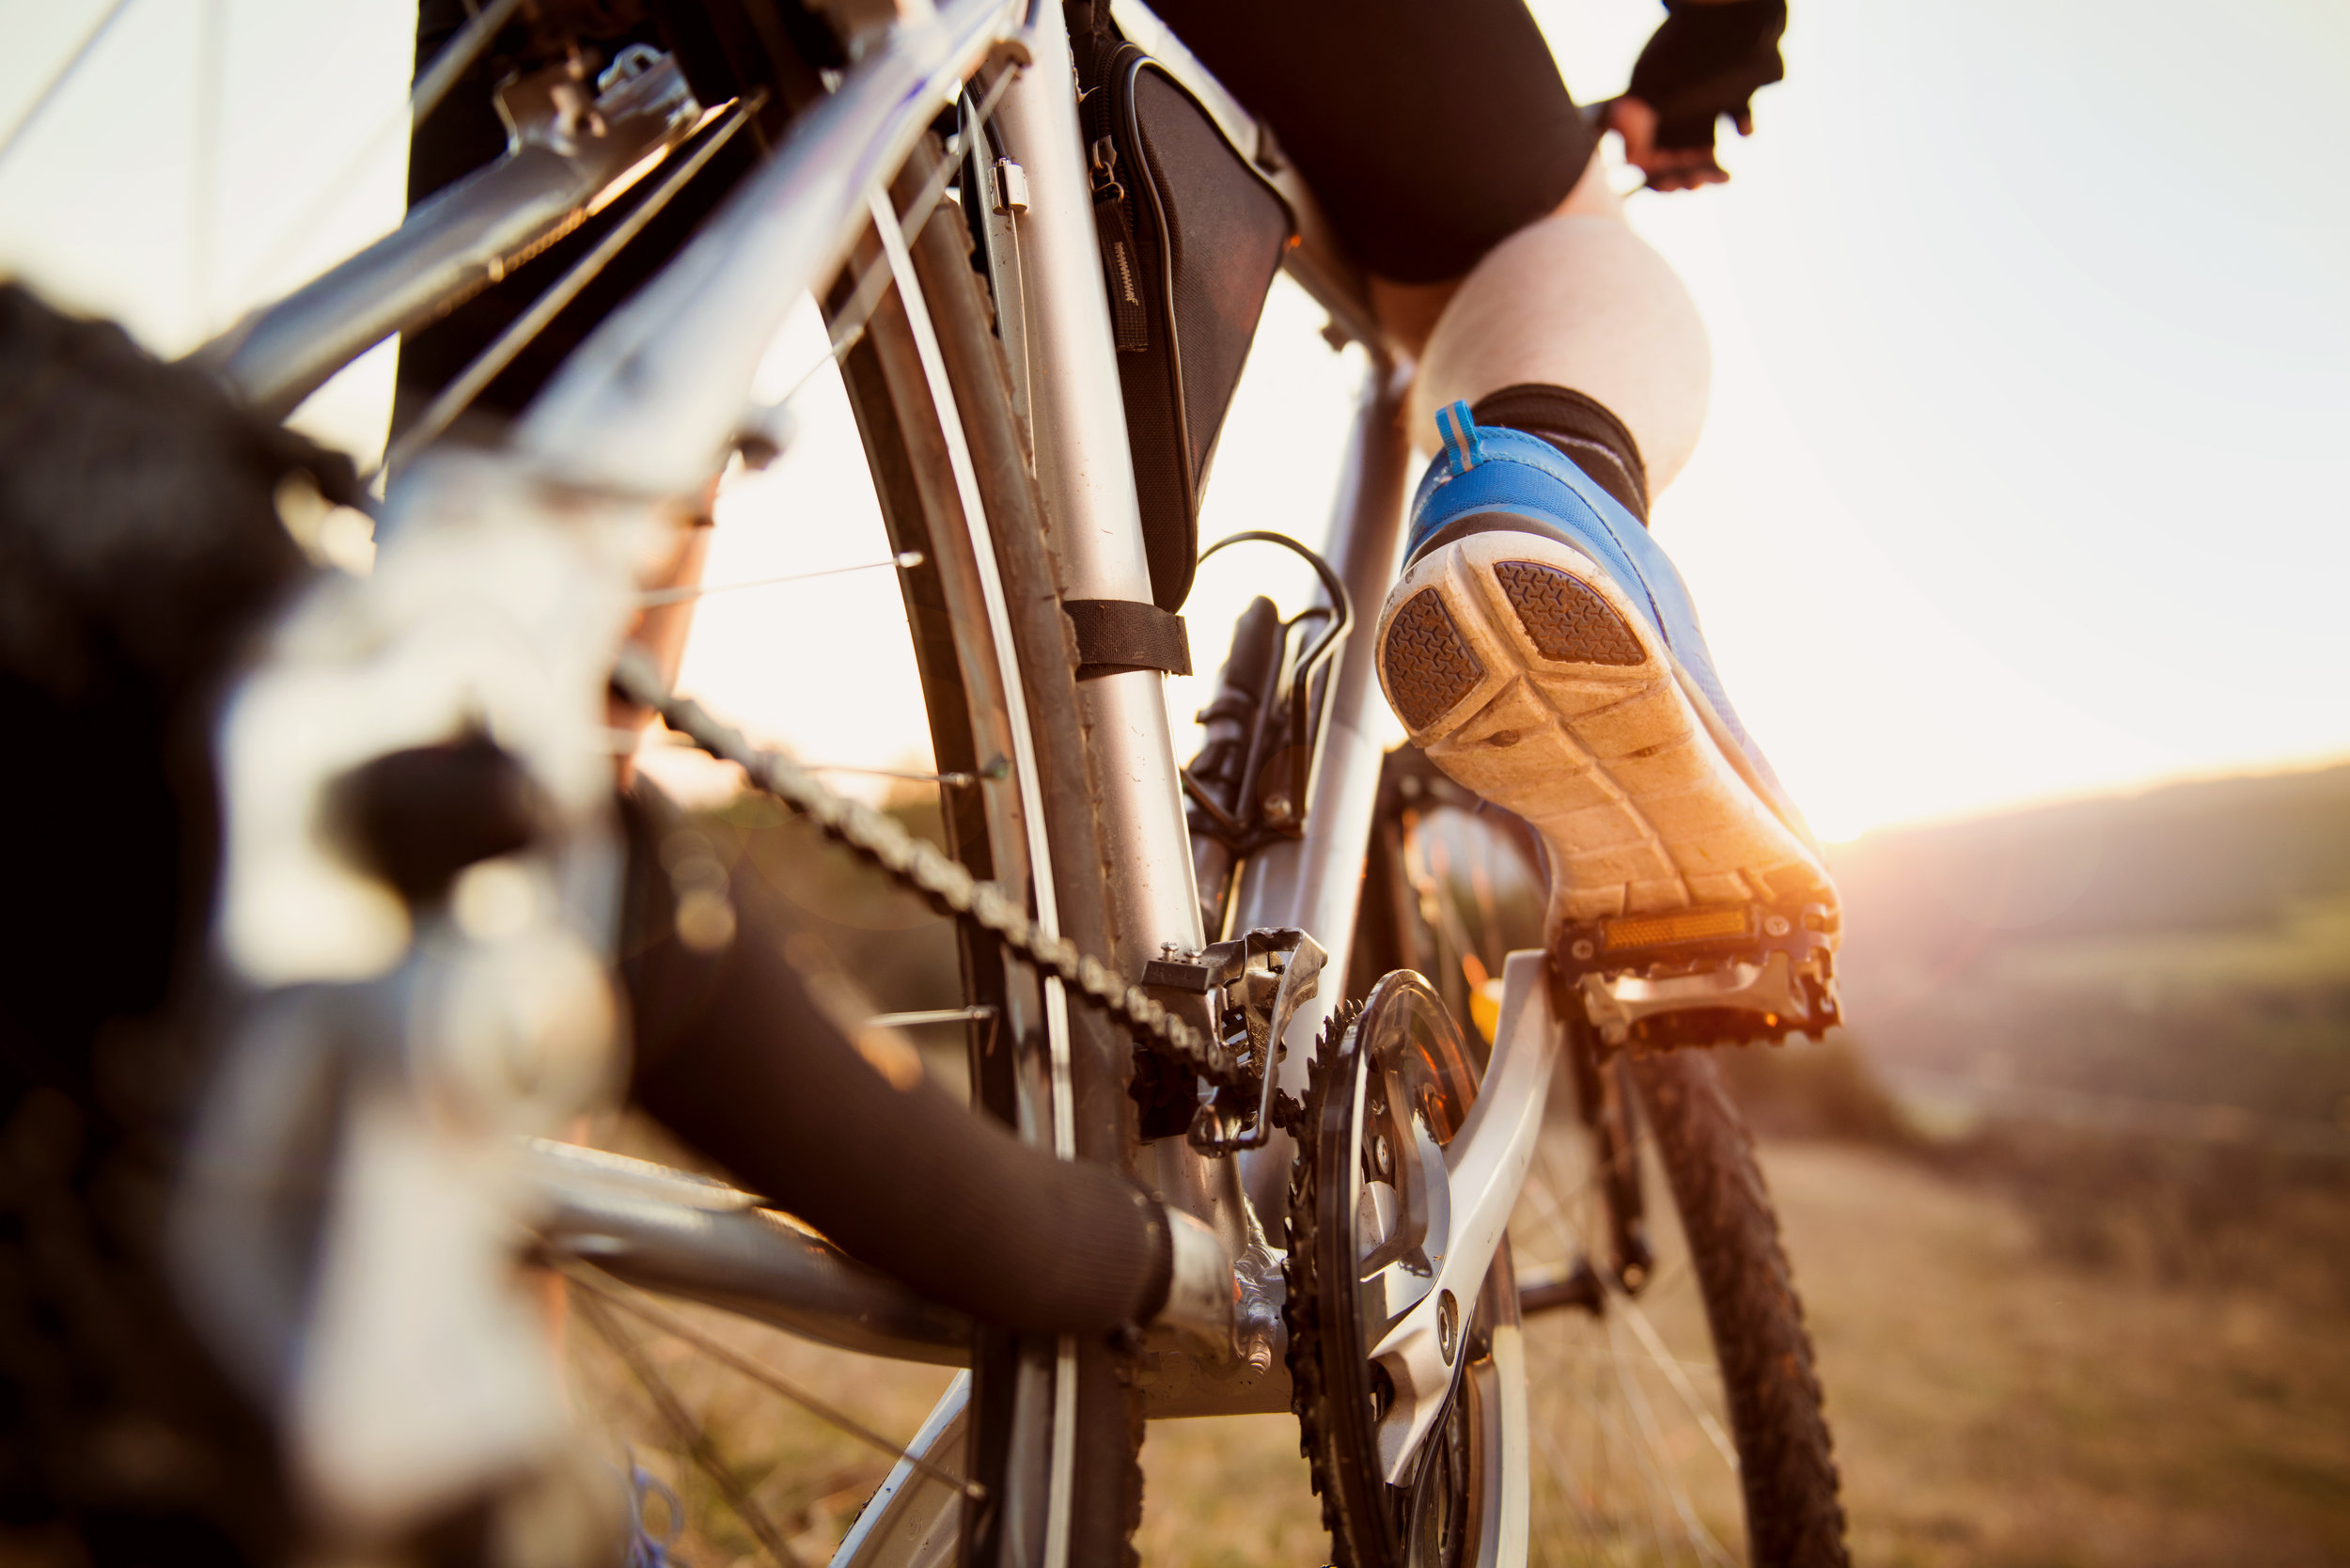 graphicstock-detail-of-cyclist-man-feet-riding-mountain-bike-on-outdoor-trail-in-sunny-meadow_r01mTenbZ.jpg